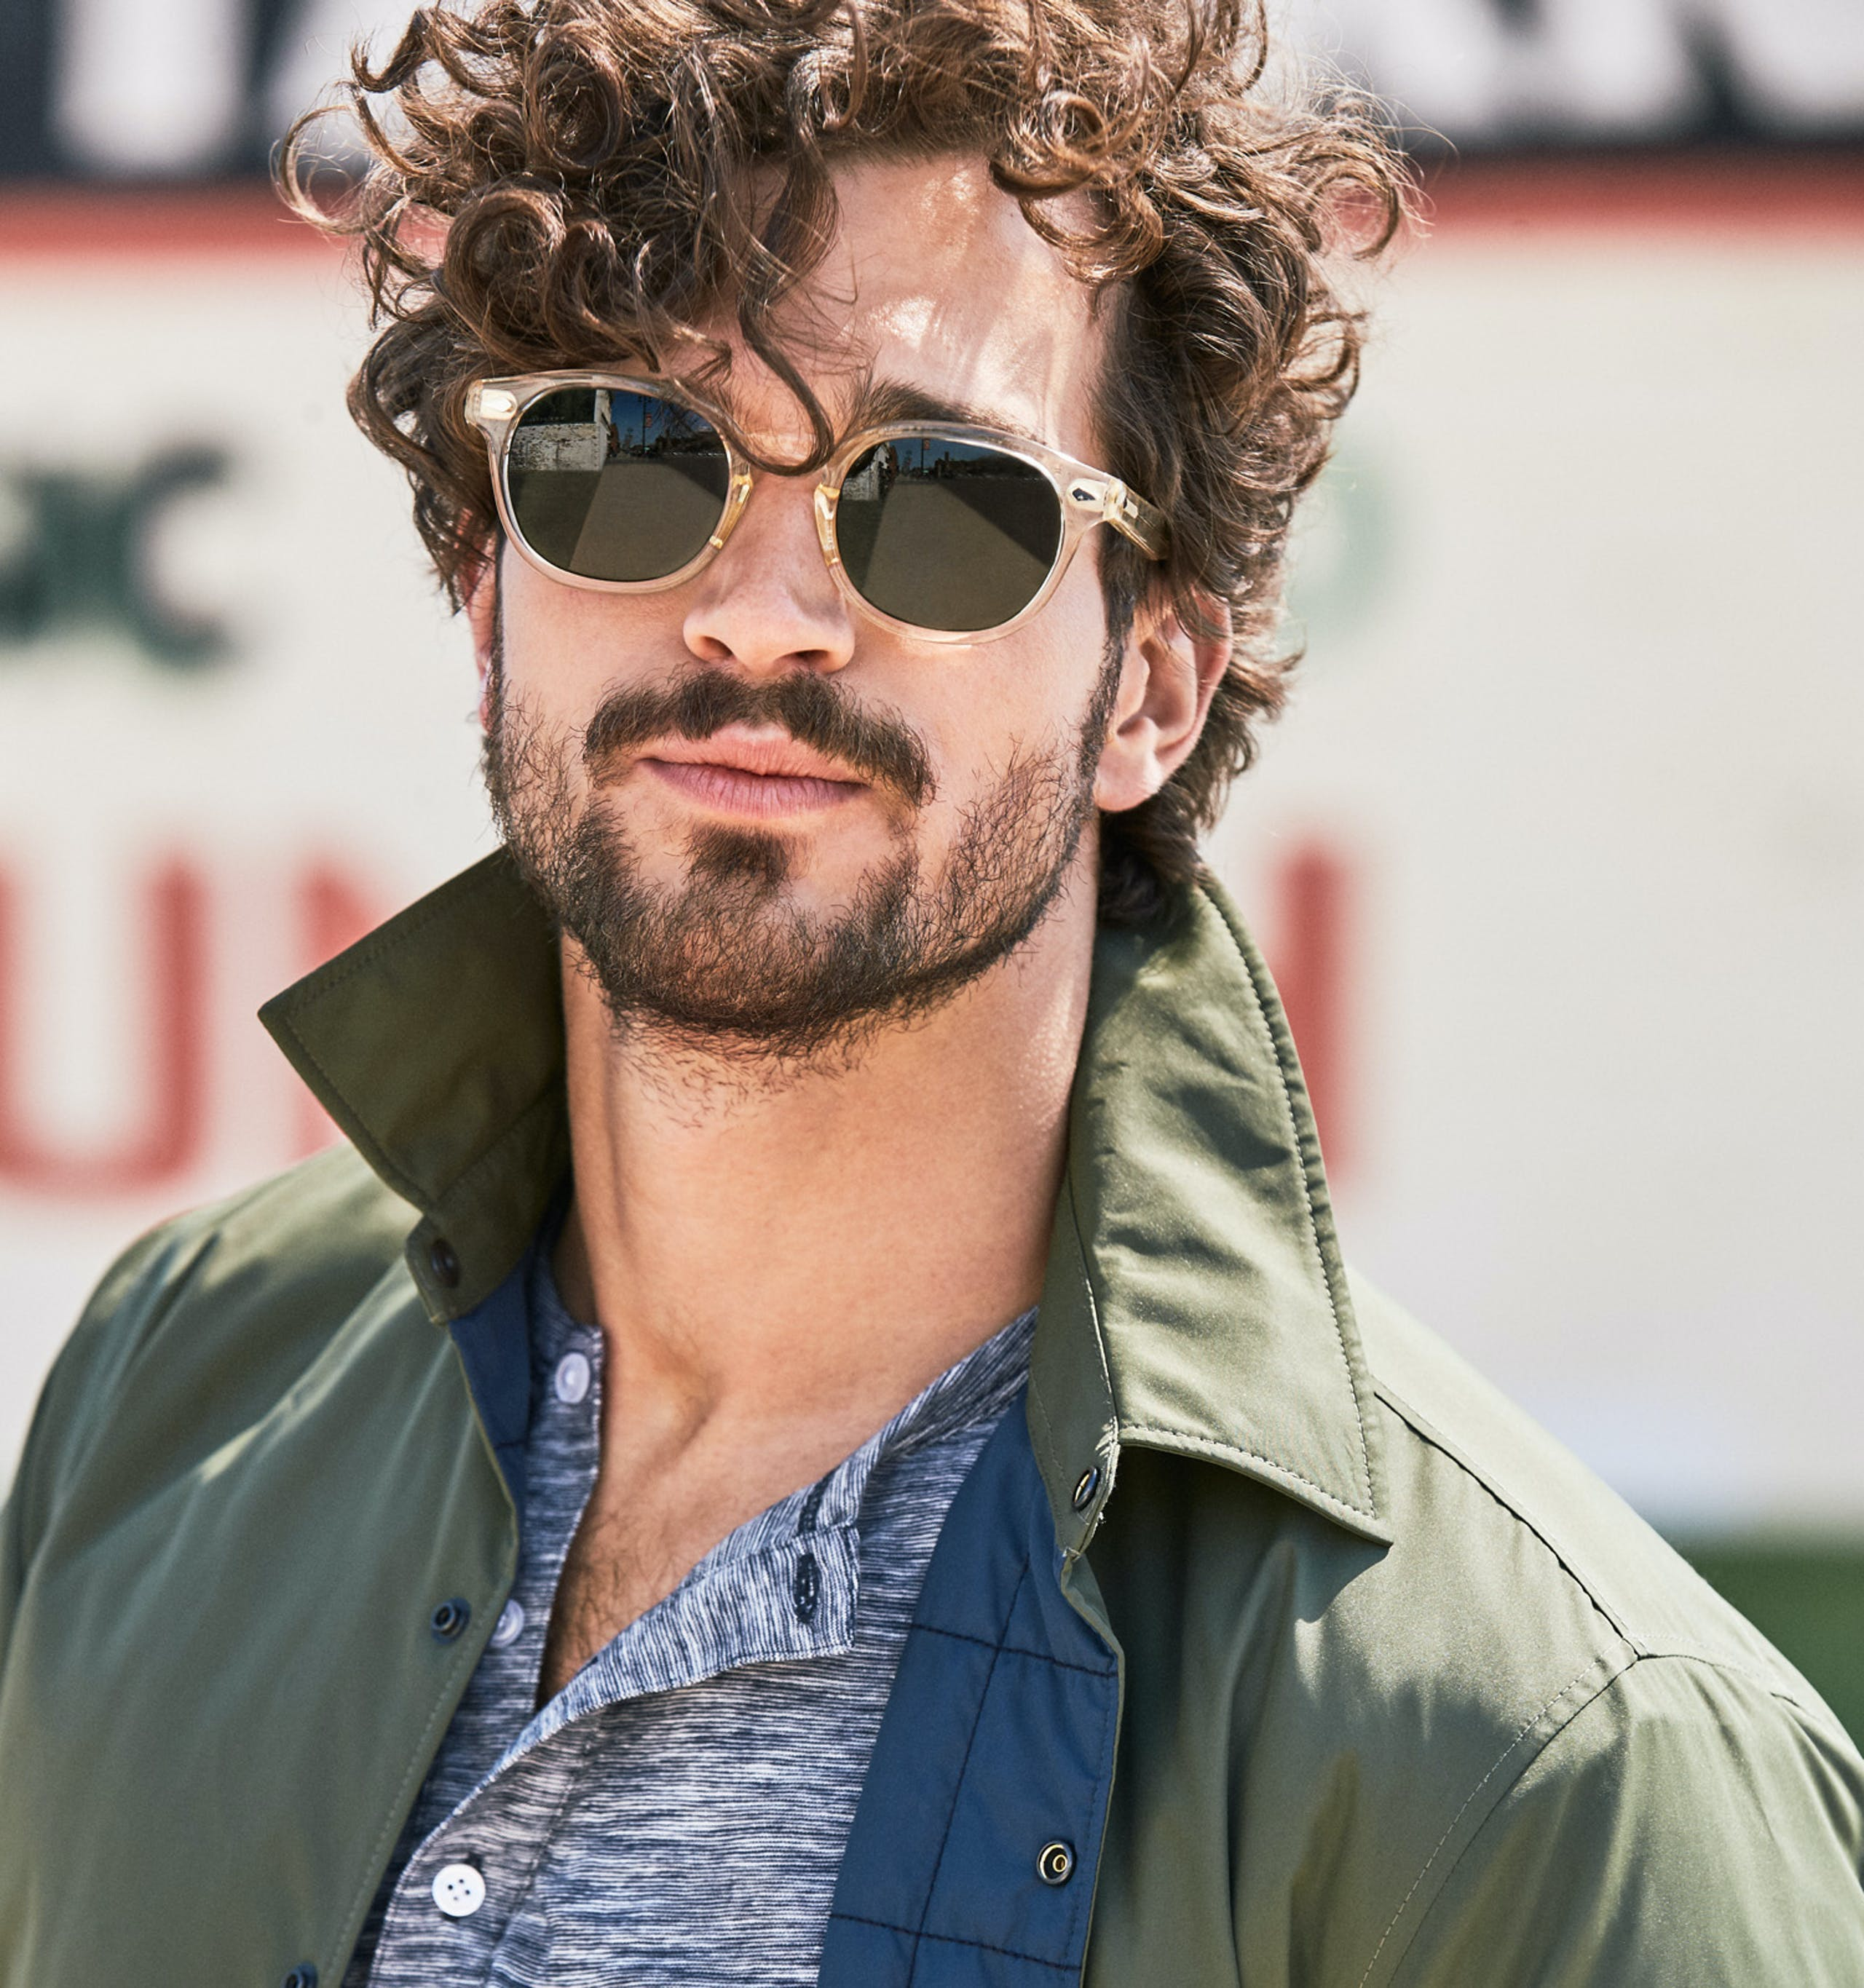 Image of man wearing bonobos outerwear and sunglasses.